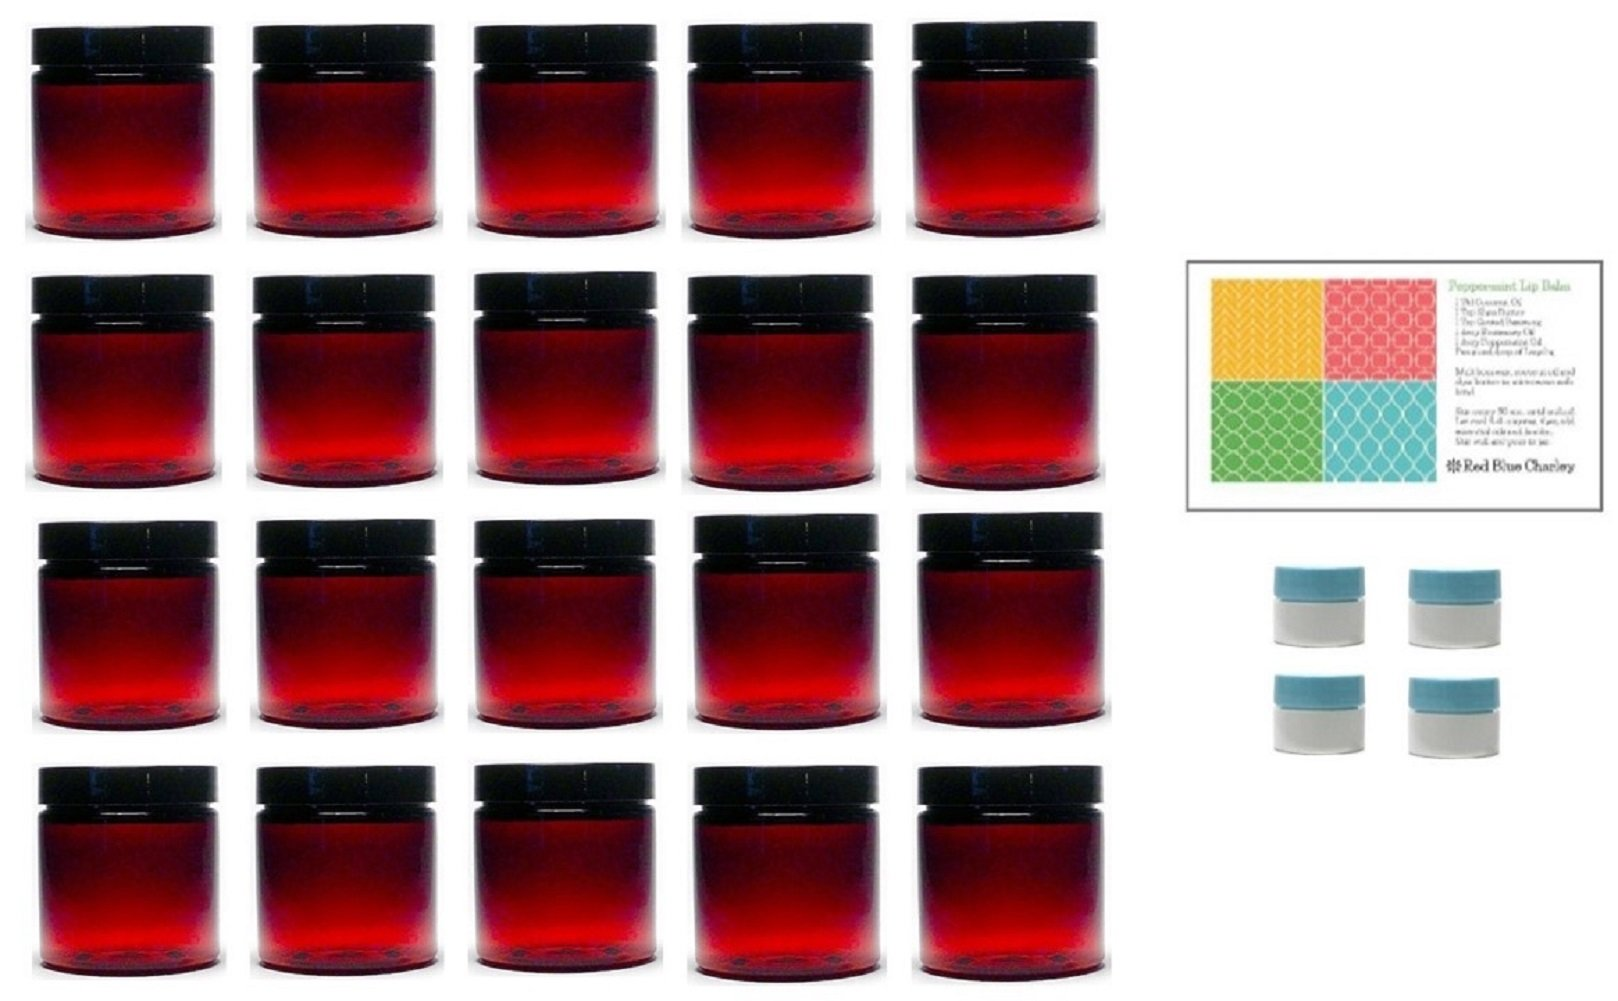 Amber 8 oz Plastic Jars with Black Lids (20 pk) with Mini Jars - PET Round Refillable Containers